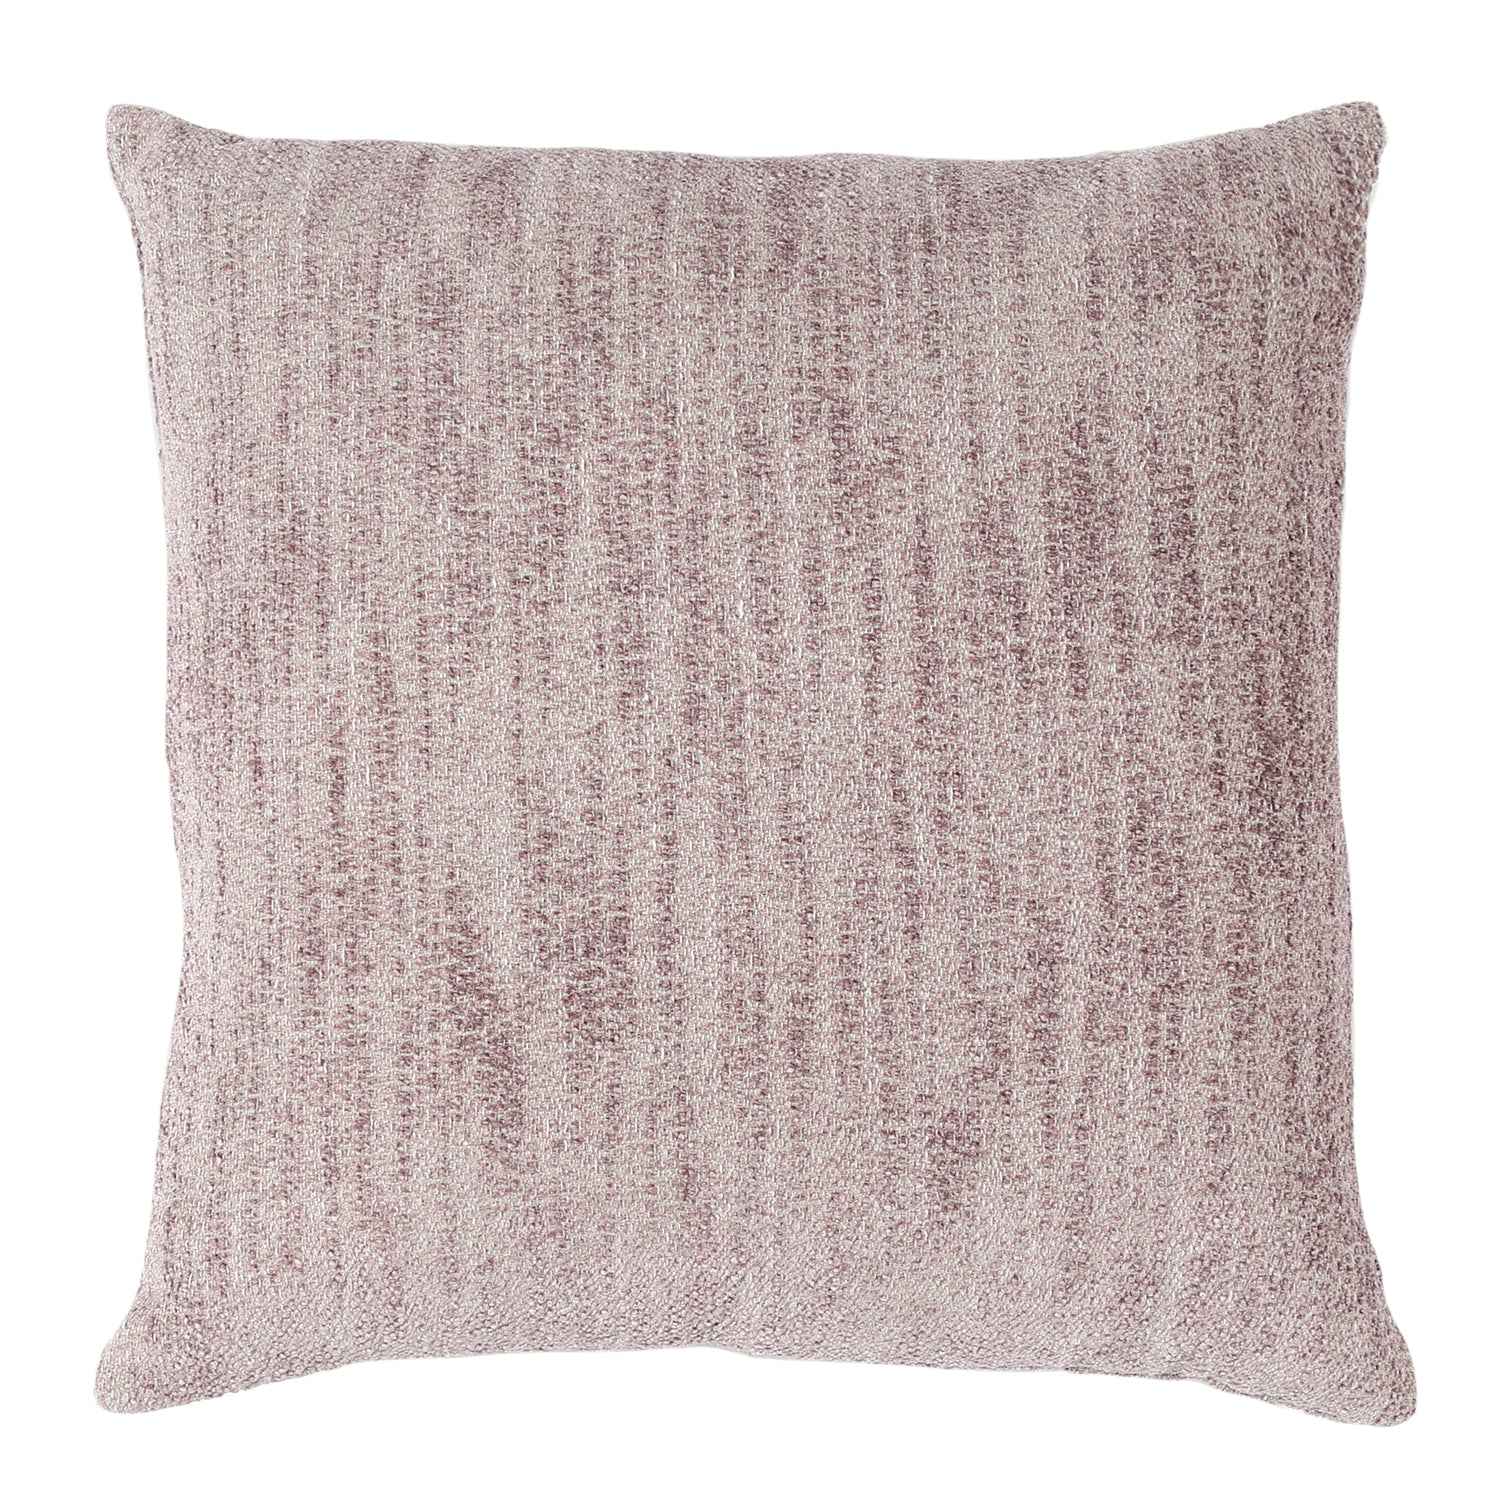 50% OFF Lavender Chenille Pillow